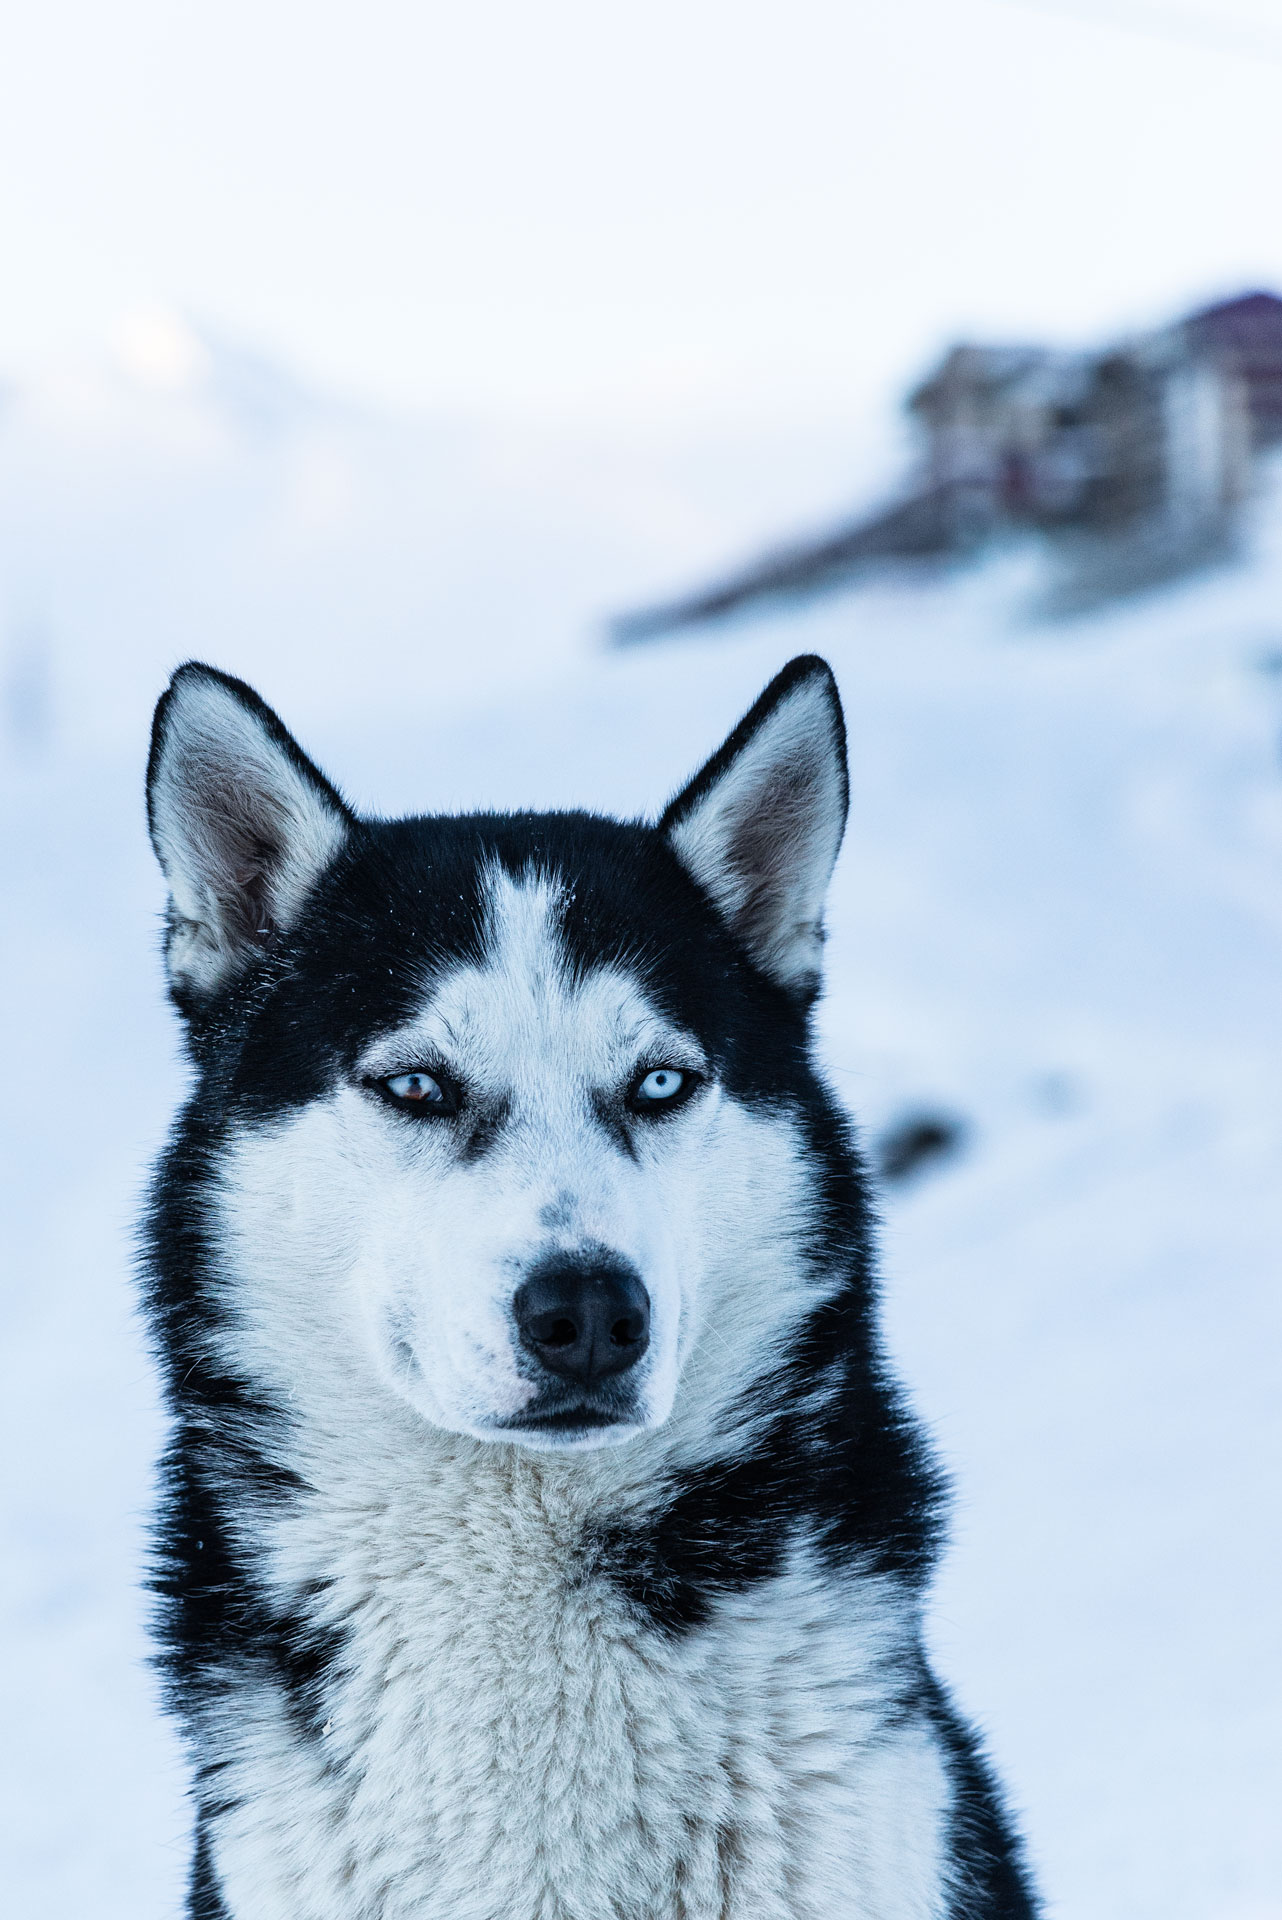 A siberian husky with one injured eye looking at the bypassers.